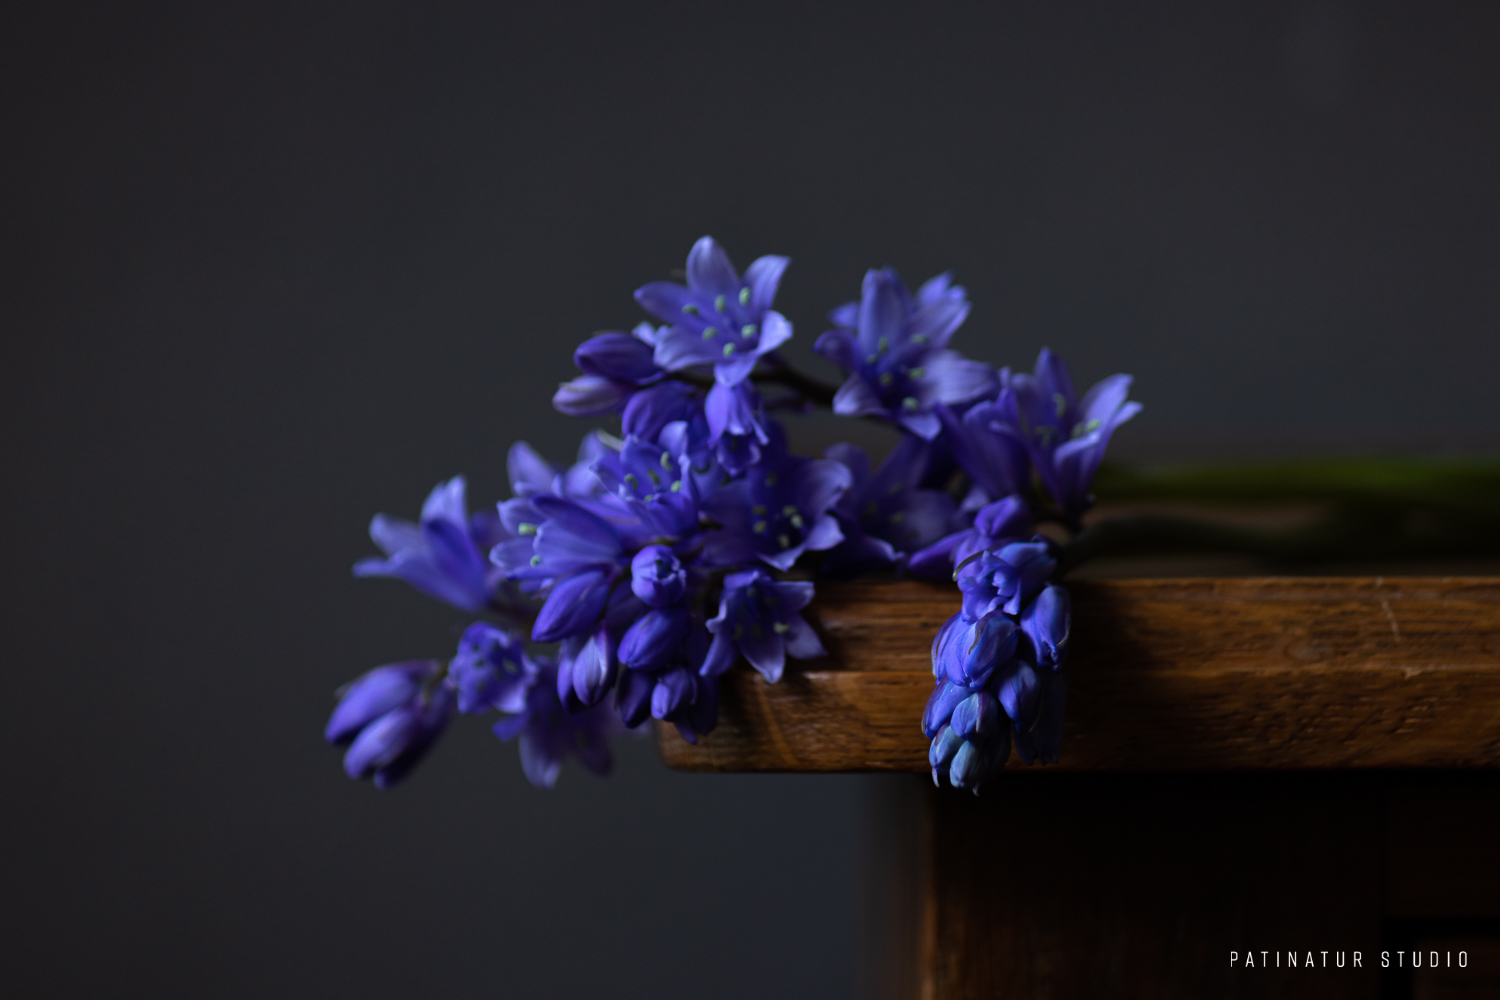 Photo art | Dark and moody floral still life with bluebells